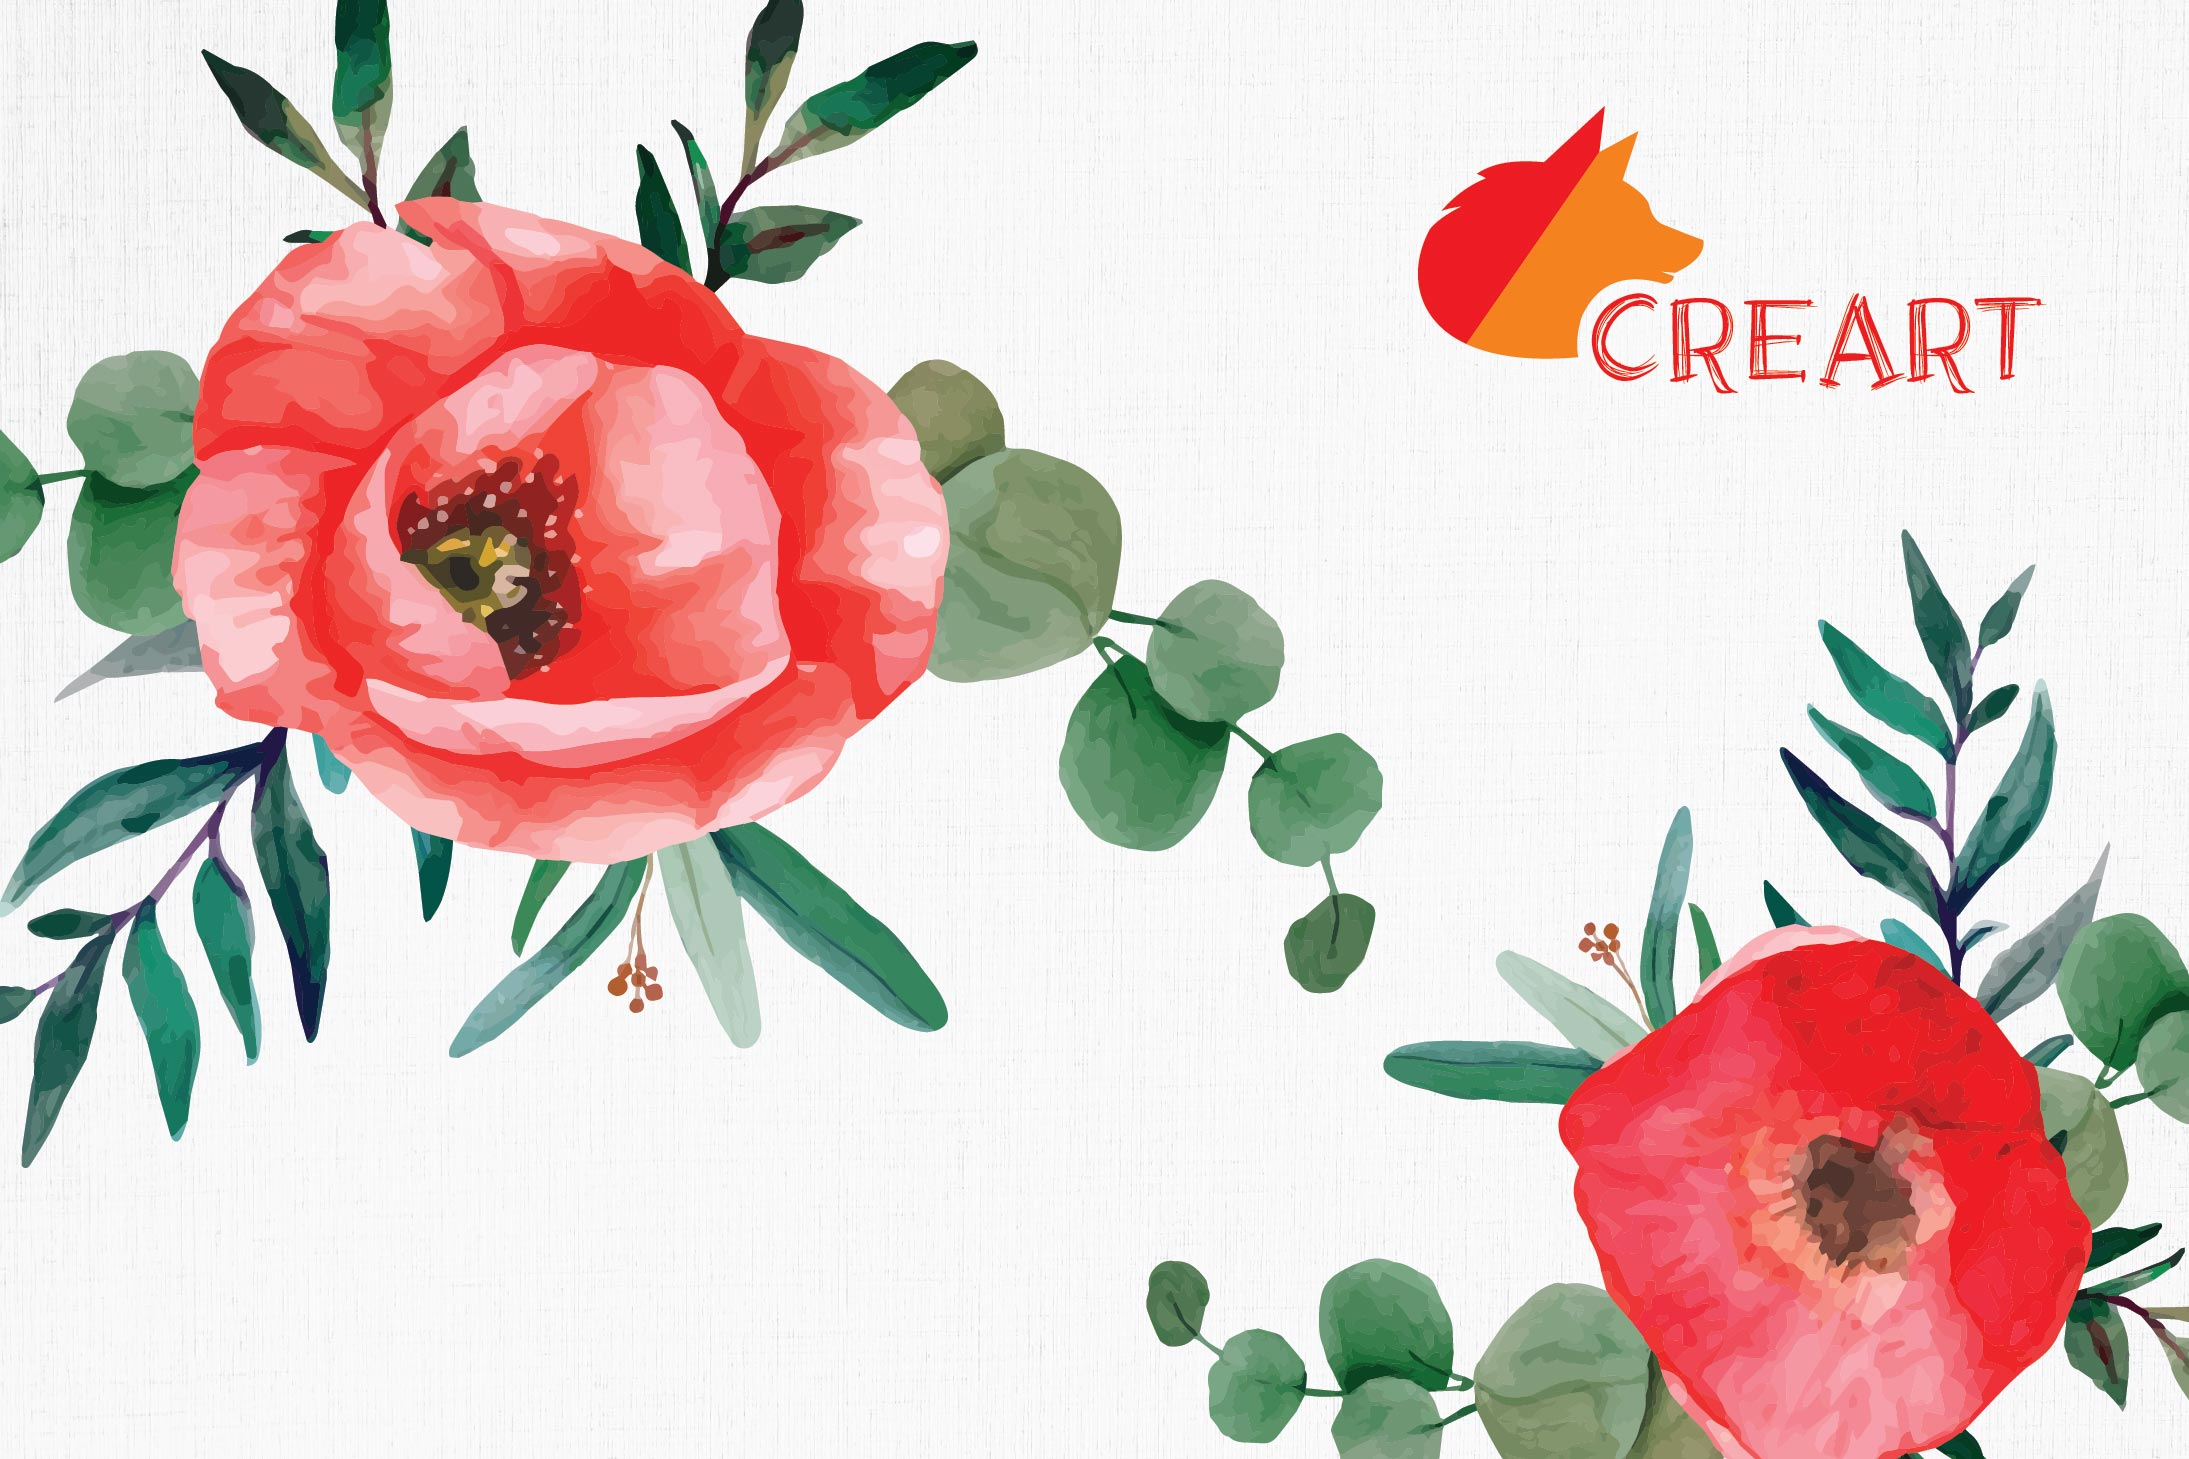 Red poppies floral watercolor wedding bouquets, floral decor example image 11